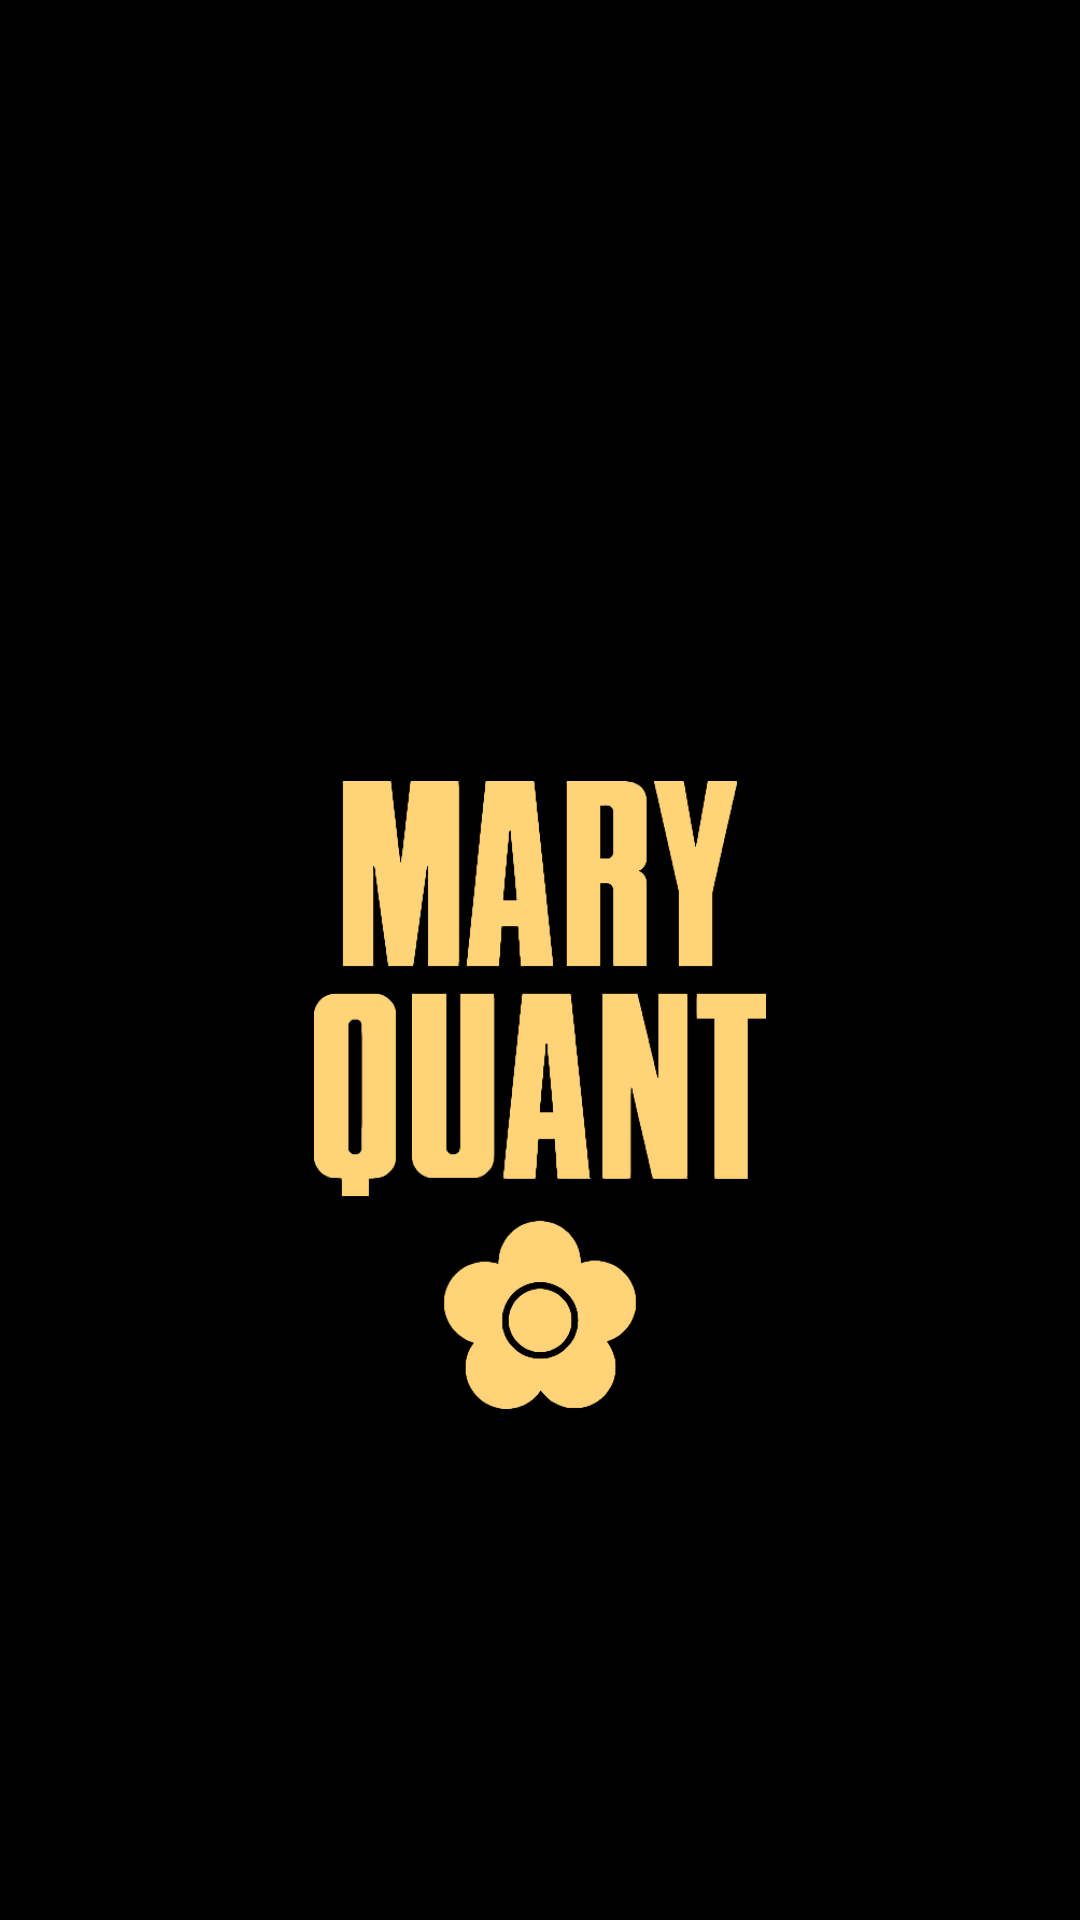 maryquant i08 - 20 MARY QUANT HQ Smartphone Wallpaper Collection